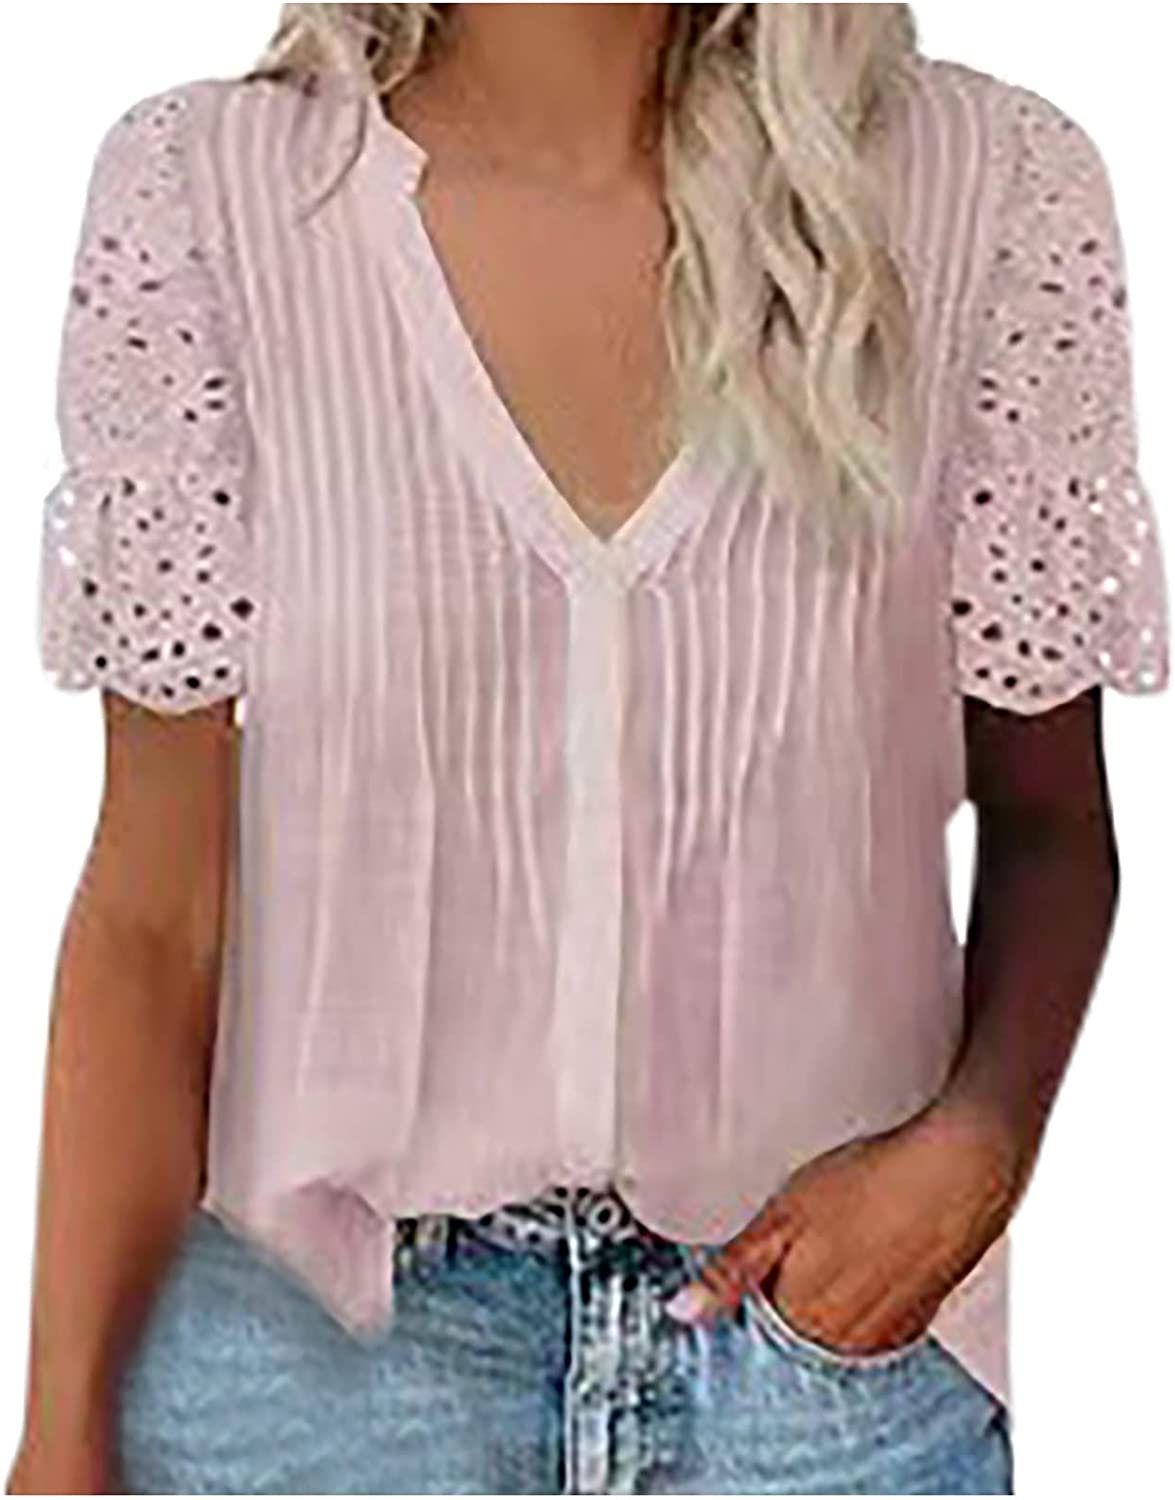 Women Tops Lace Crochet Eyelet T Shirts V-Neck Solid Color Short Sleeve Summer Fashion Comfy Blouses